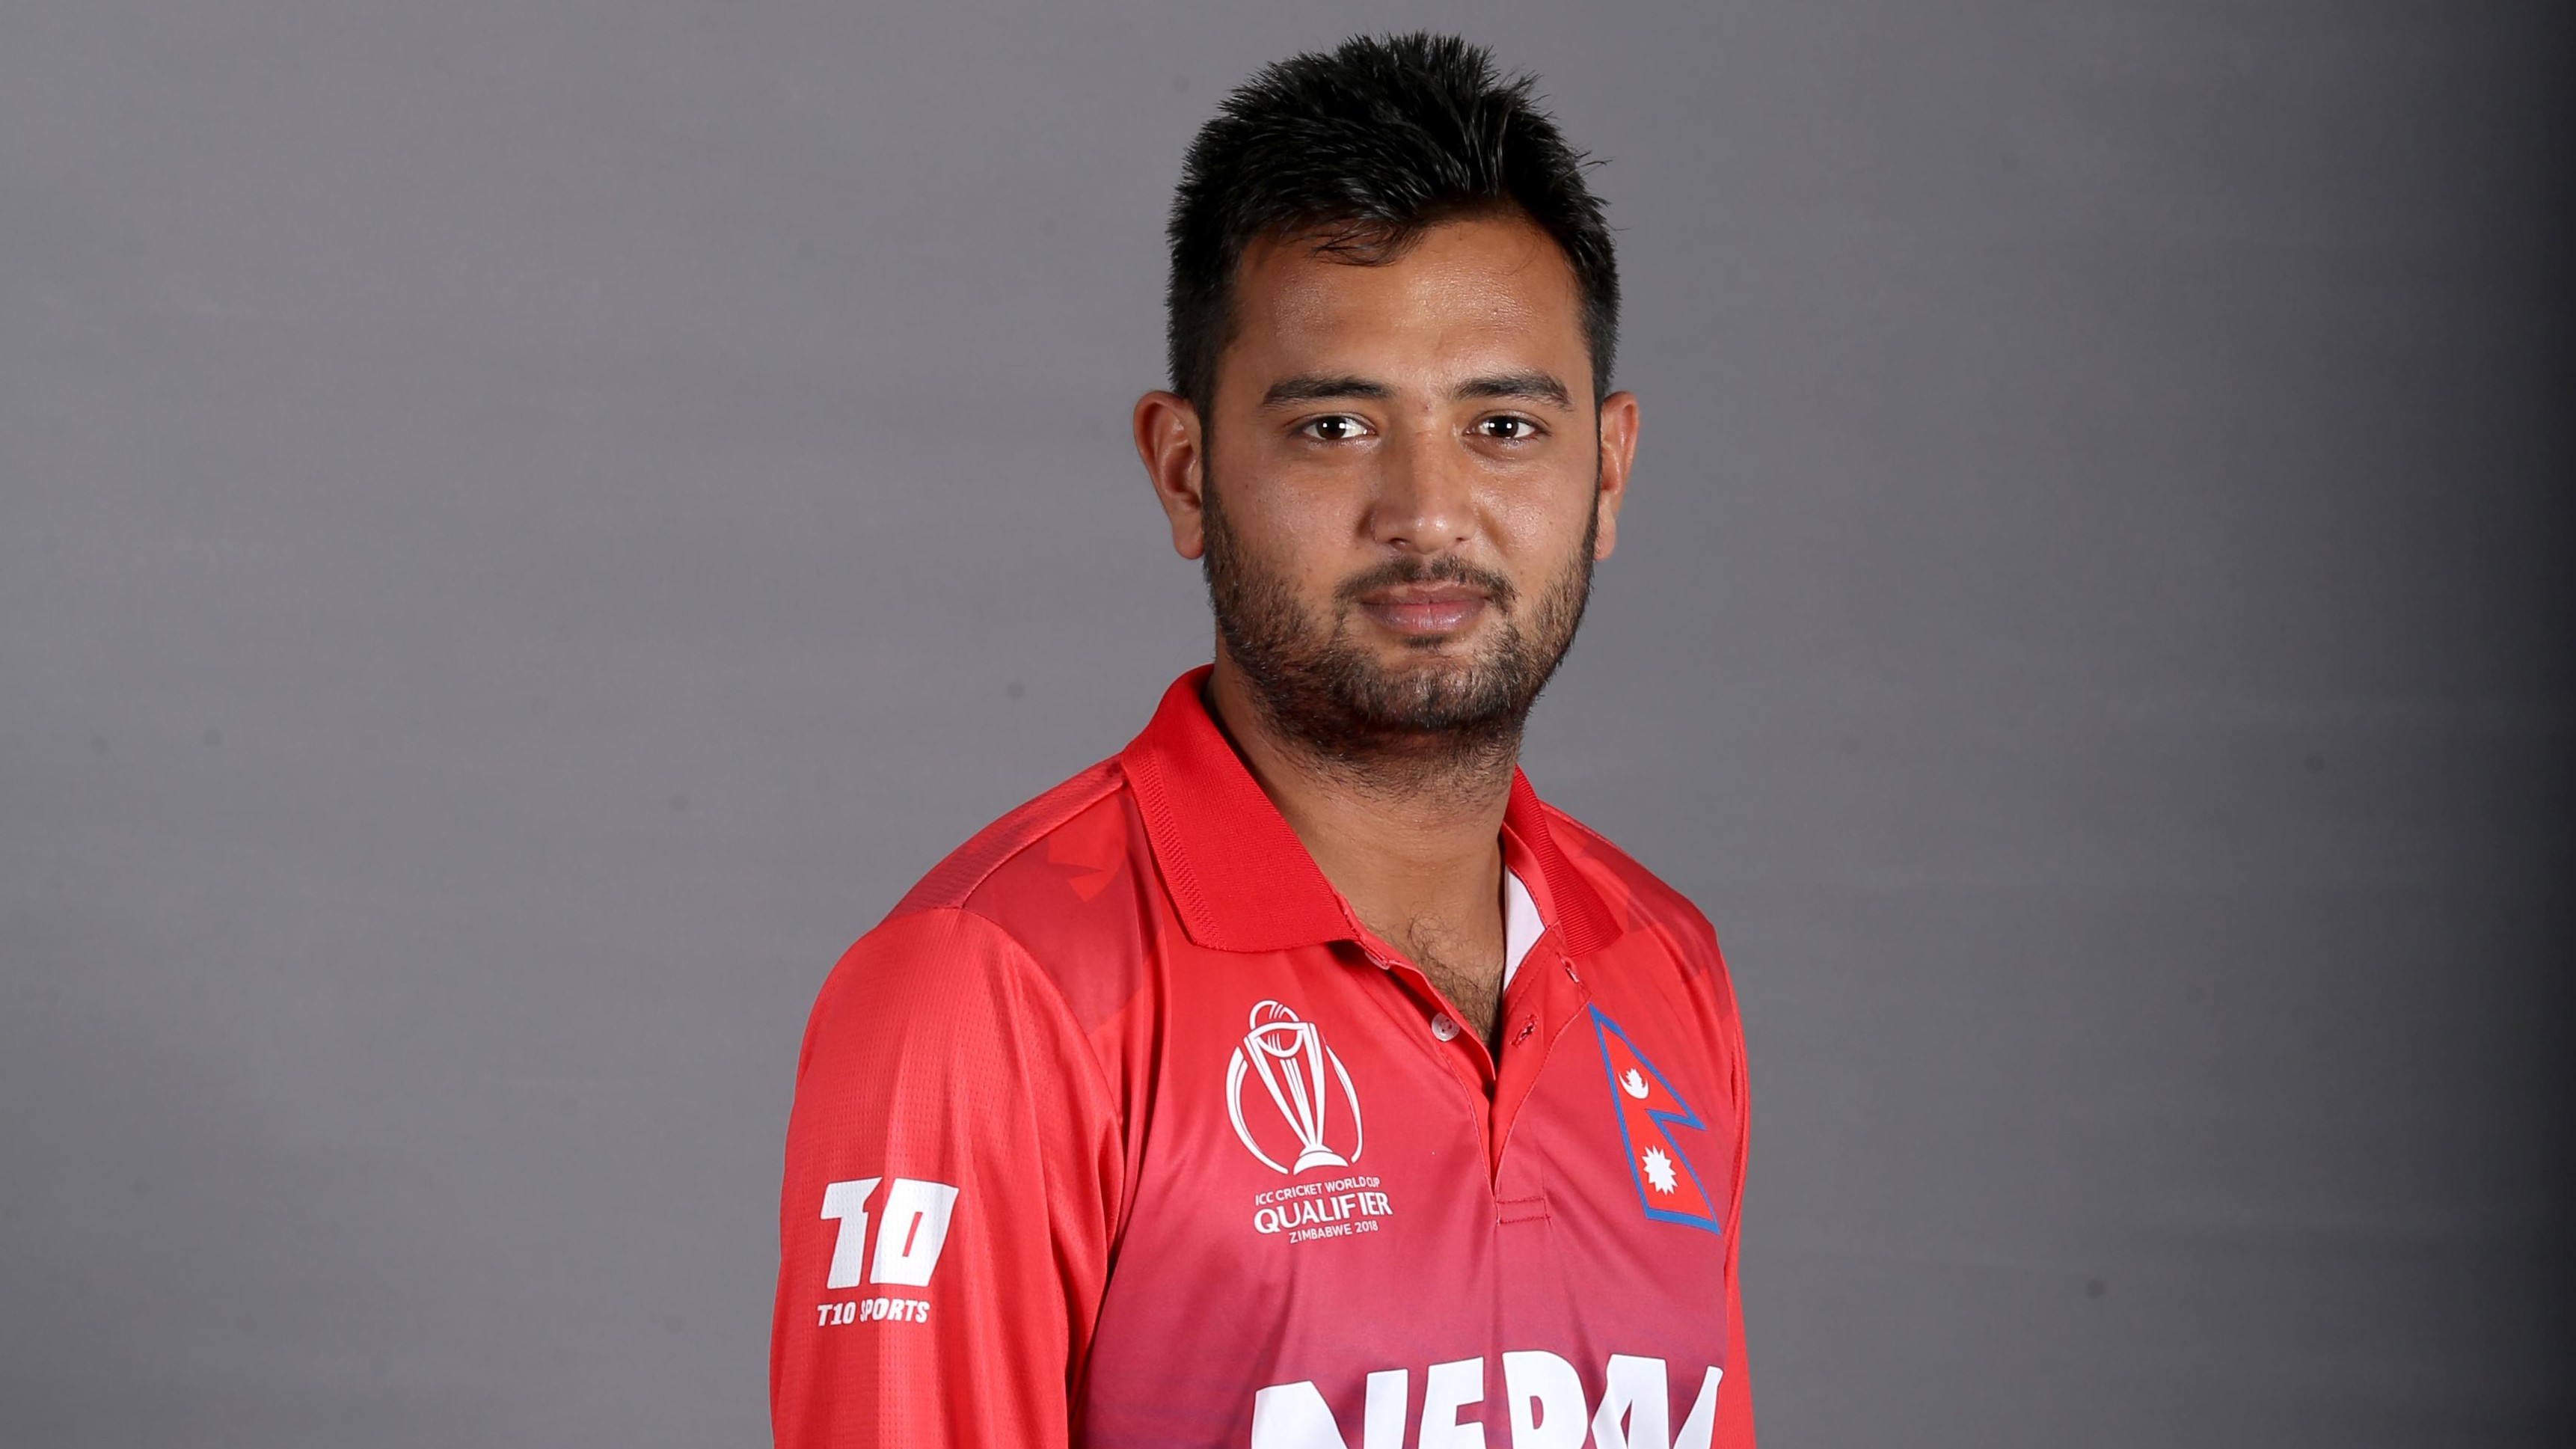 Nepal cricketer Lalit Bhandari severely injured in motorcycle accident